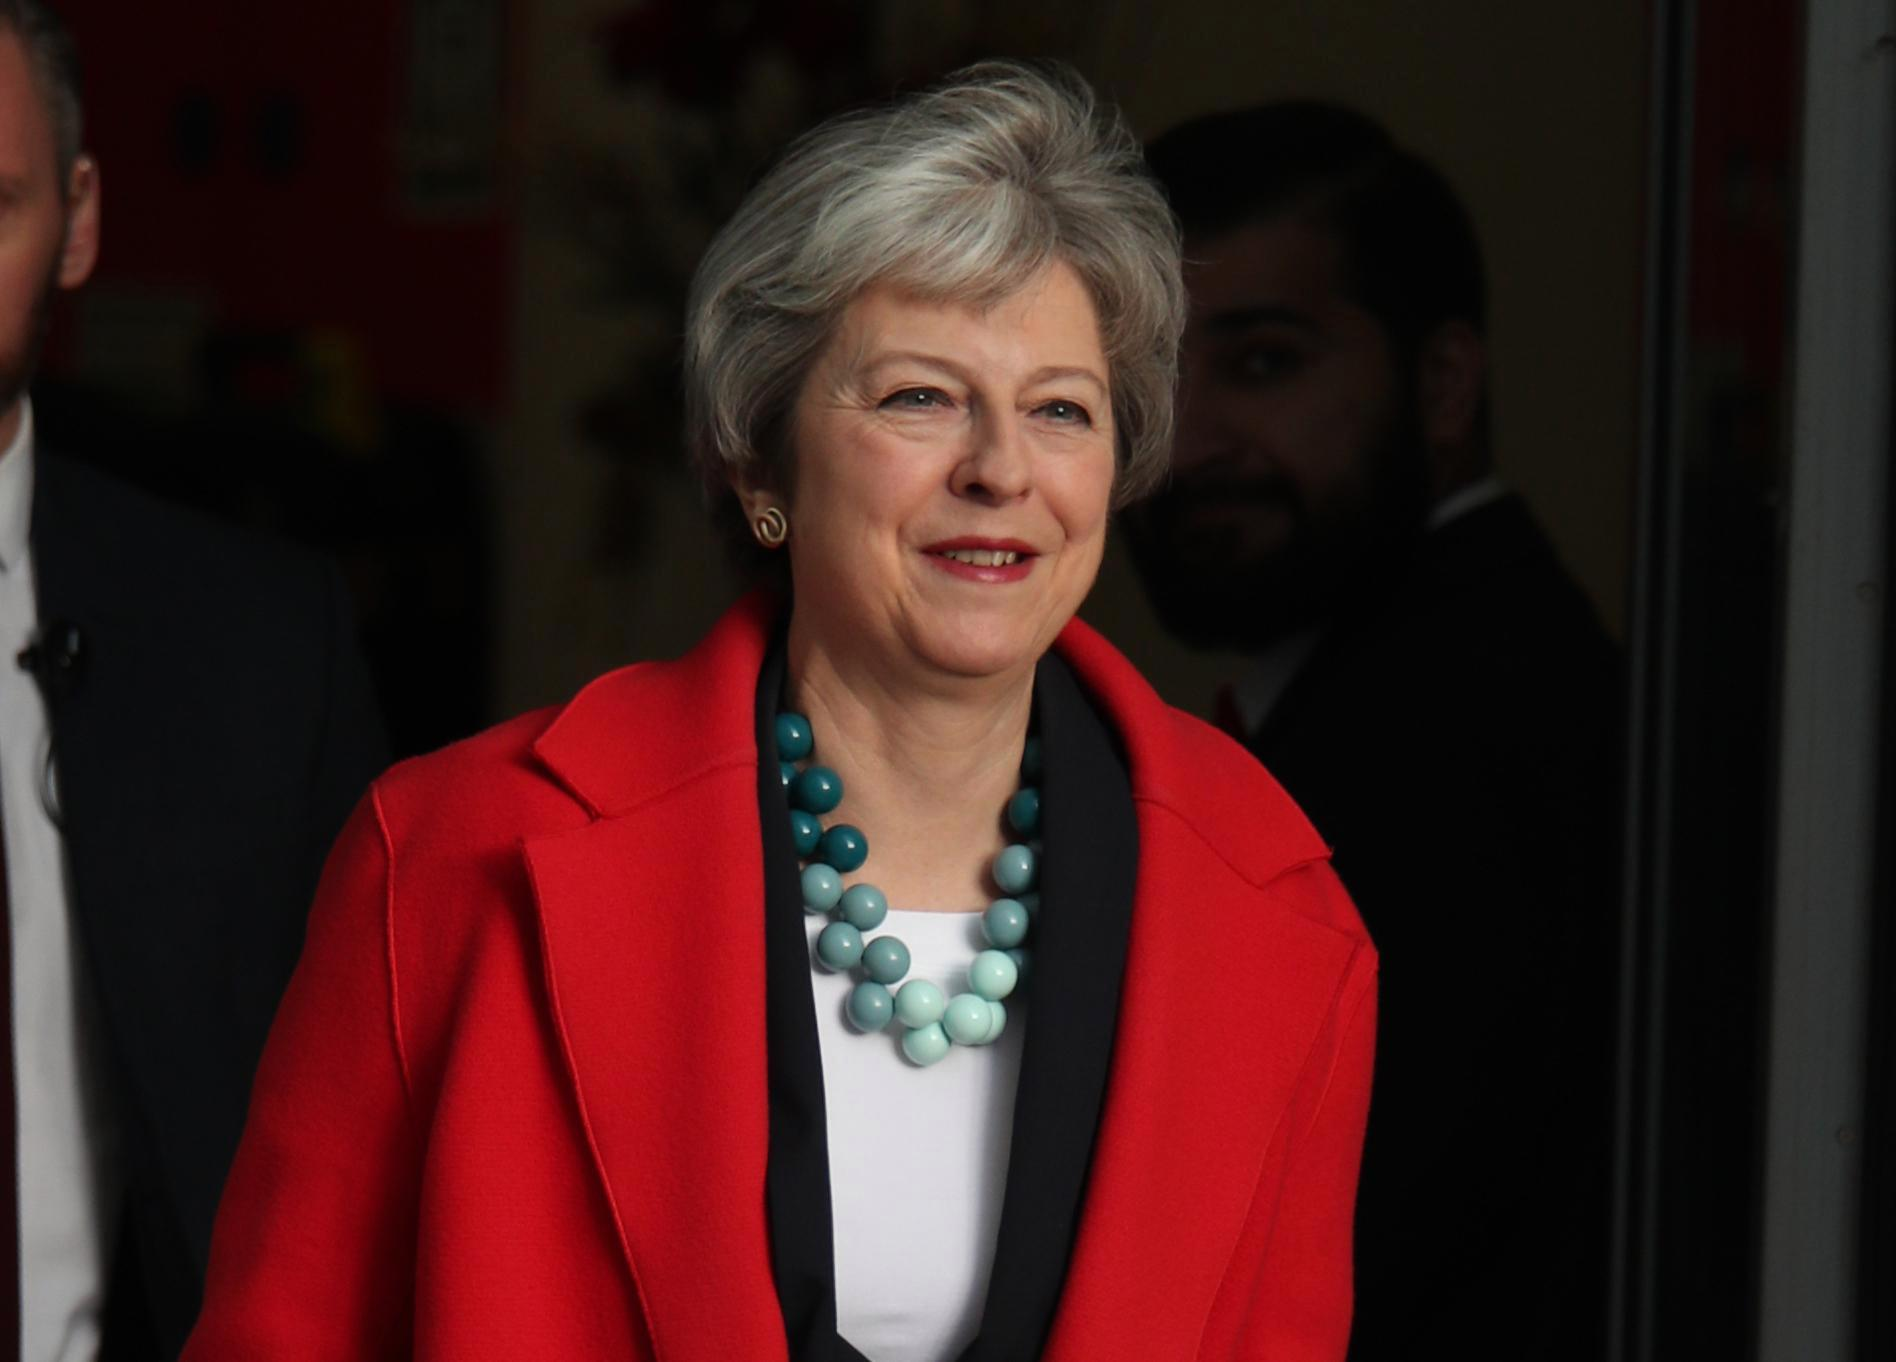 Theresa May faces crushing Brexit defeat on hated deal as rebels plot guerrilla war